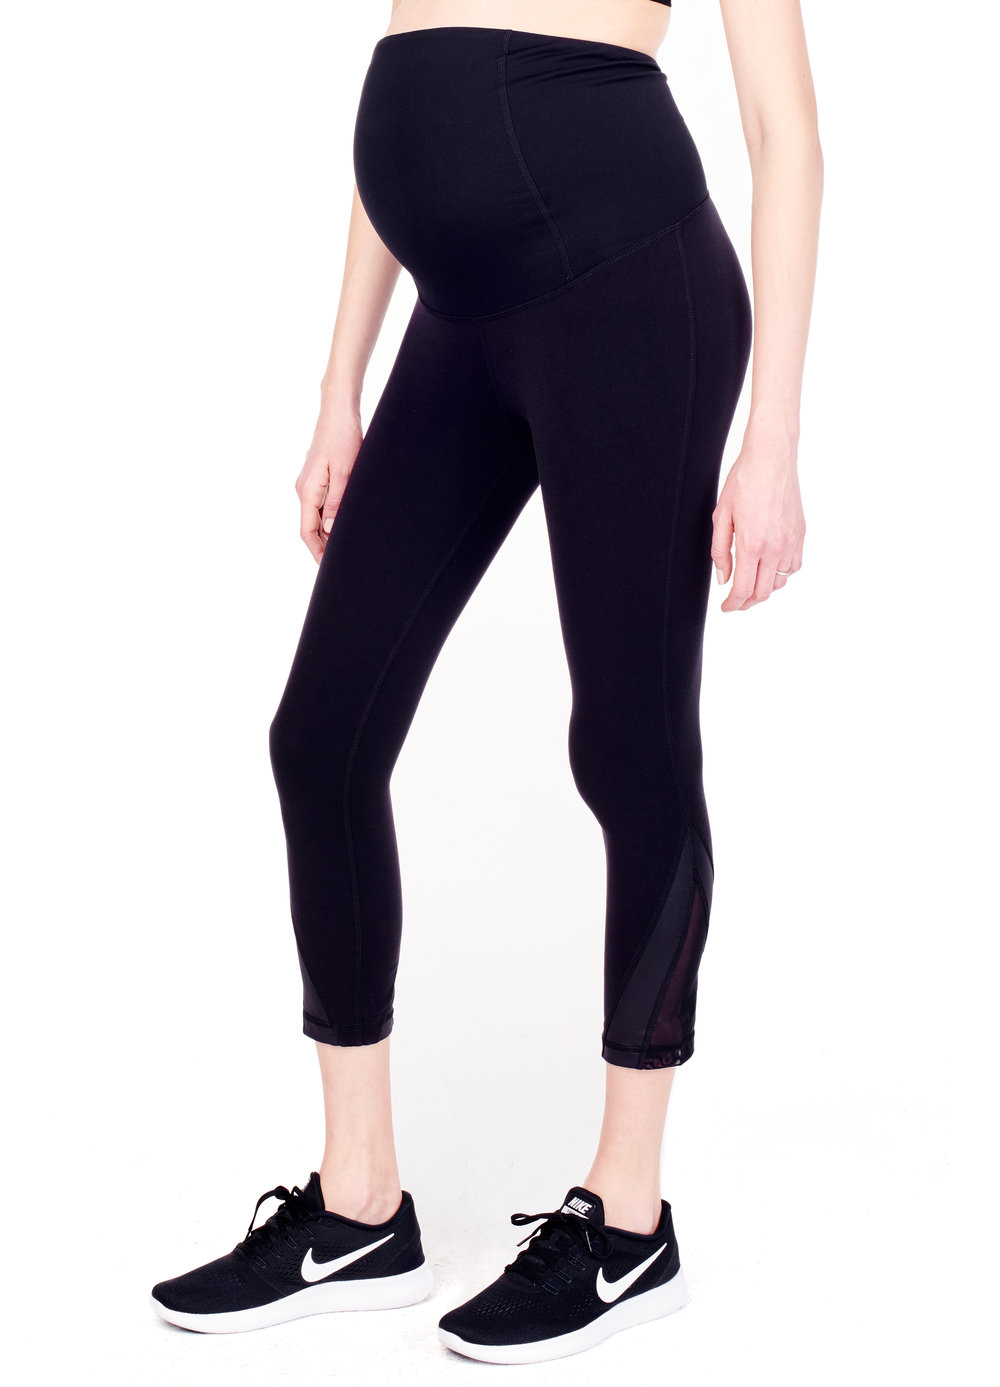 Active Mesh Detail Capri ft. Crossover Panel® - • Crossover Panel® offers gentle back support as your belly grows.•Crossover design keeps your back cool.•Wear panel over the belly or folded down.•Stays up! No more slipping or yanking.•Four-way stretch.•Moisture-wicking and antimicrobial.•Our best-selling active silhouette with mesh detail at calf.